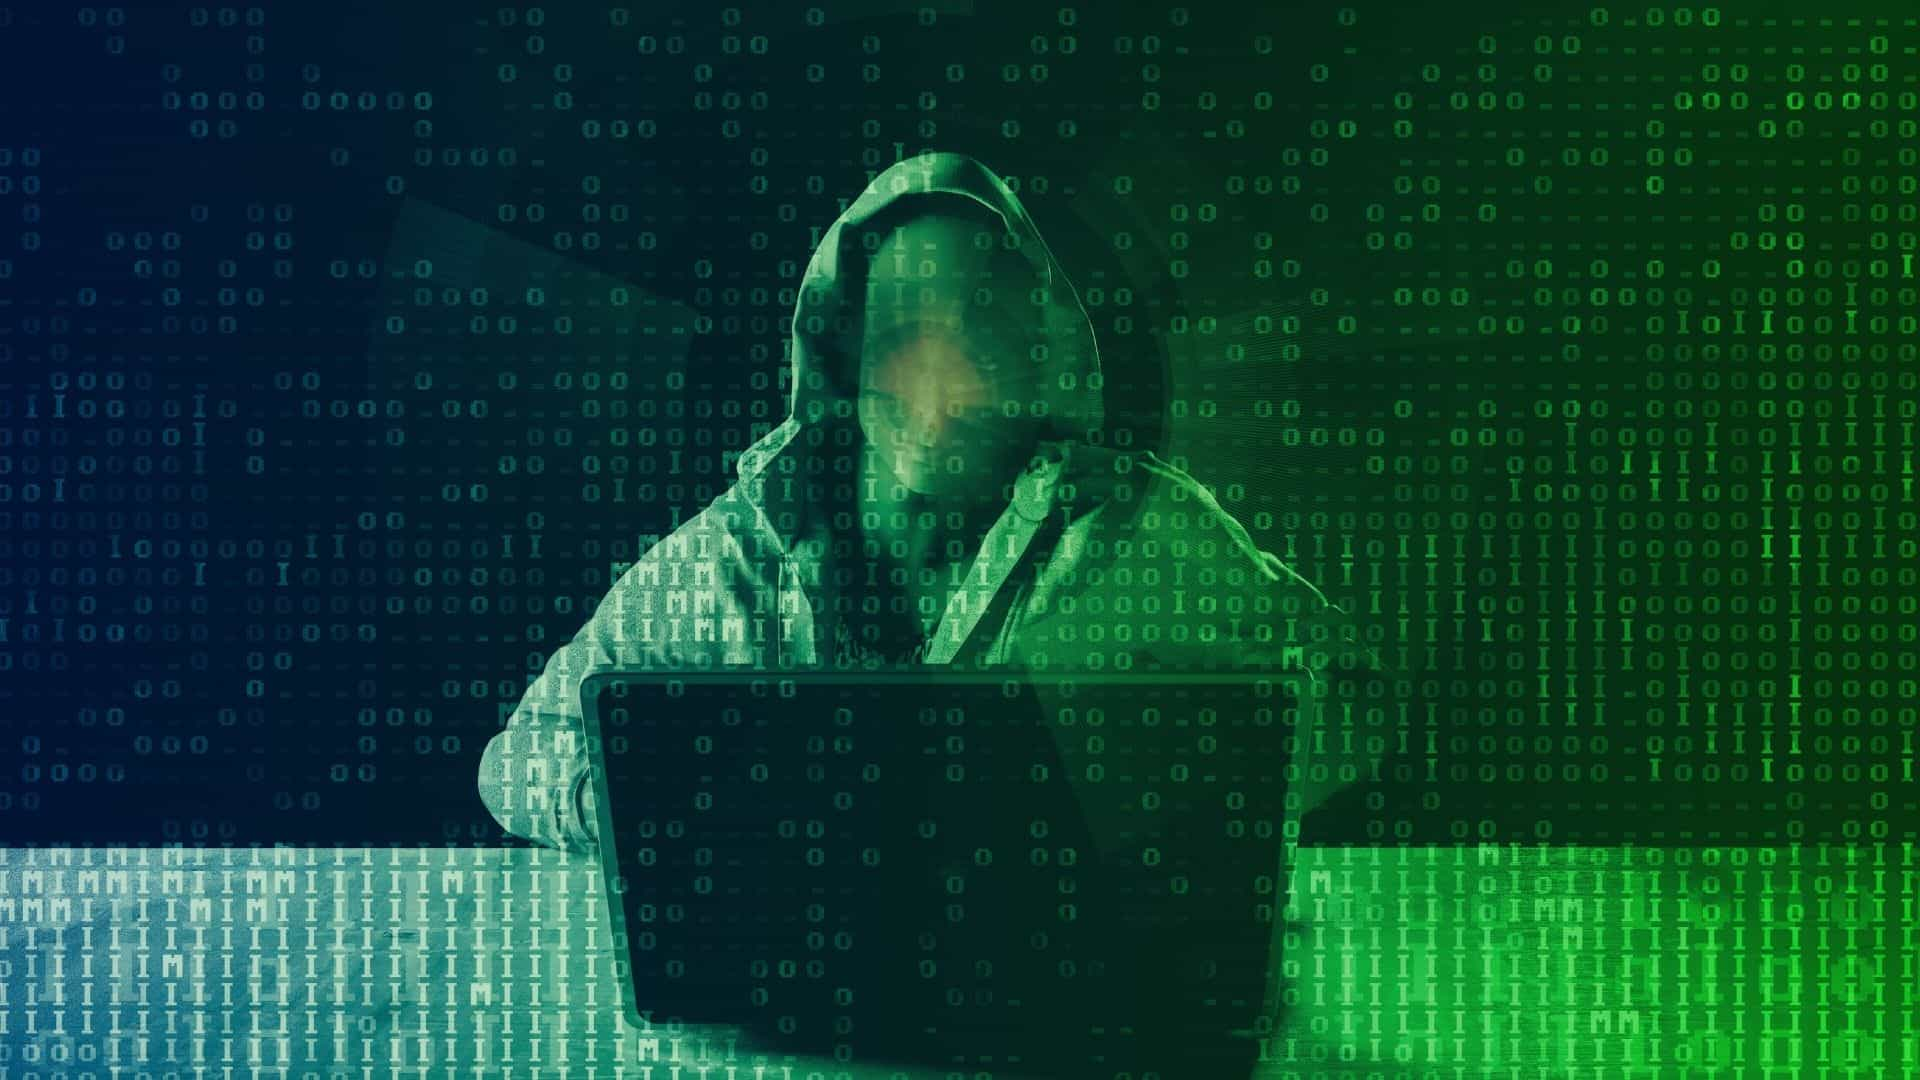 10 Tips to Prevent Data Theft for Your Small Business